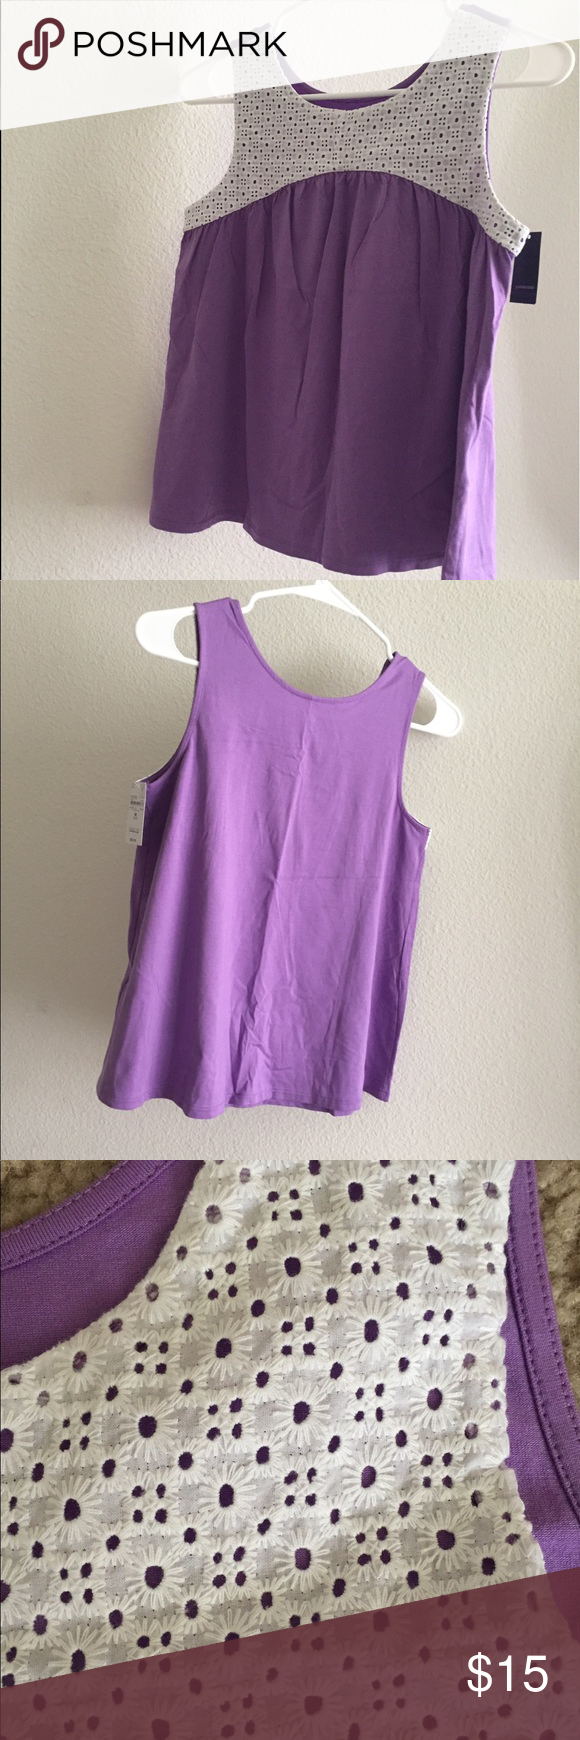 ada63bcd0f1a0 Lands End sleeveless Lavender shirt Beautiful Lands End lavender colored sleeveless  shirt for kids size 10-12 (M) Lands  End Shirts   Tops Tank Tops